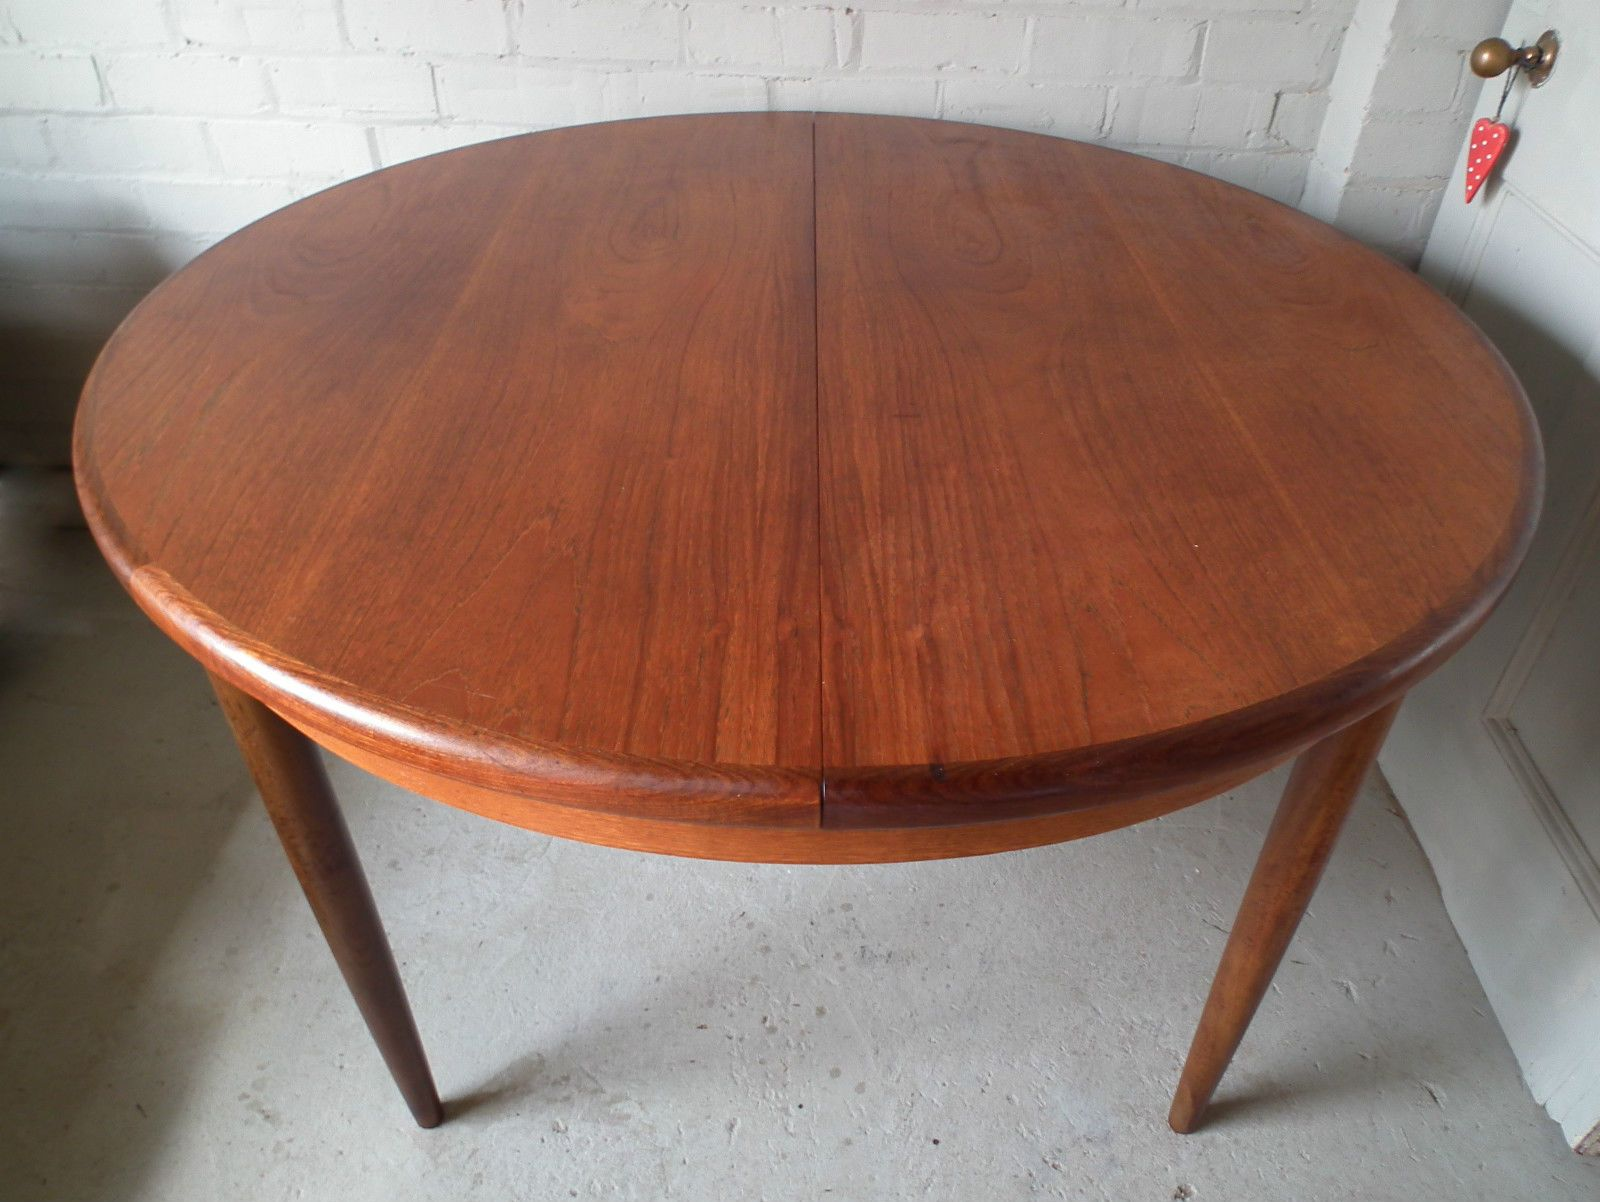 Vintage Retro Teak G Plan Fresco Round Extending Dining Table 60s Danish Style Ebay Mcm Furniture Furniture Retro Furniture